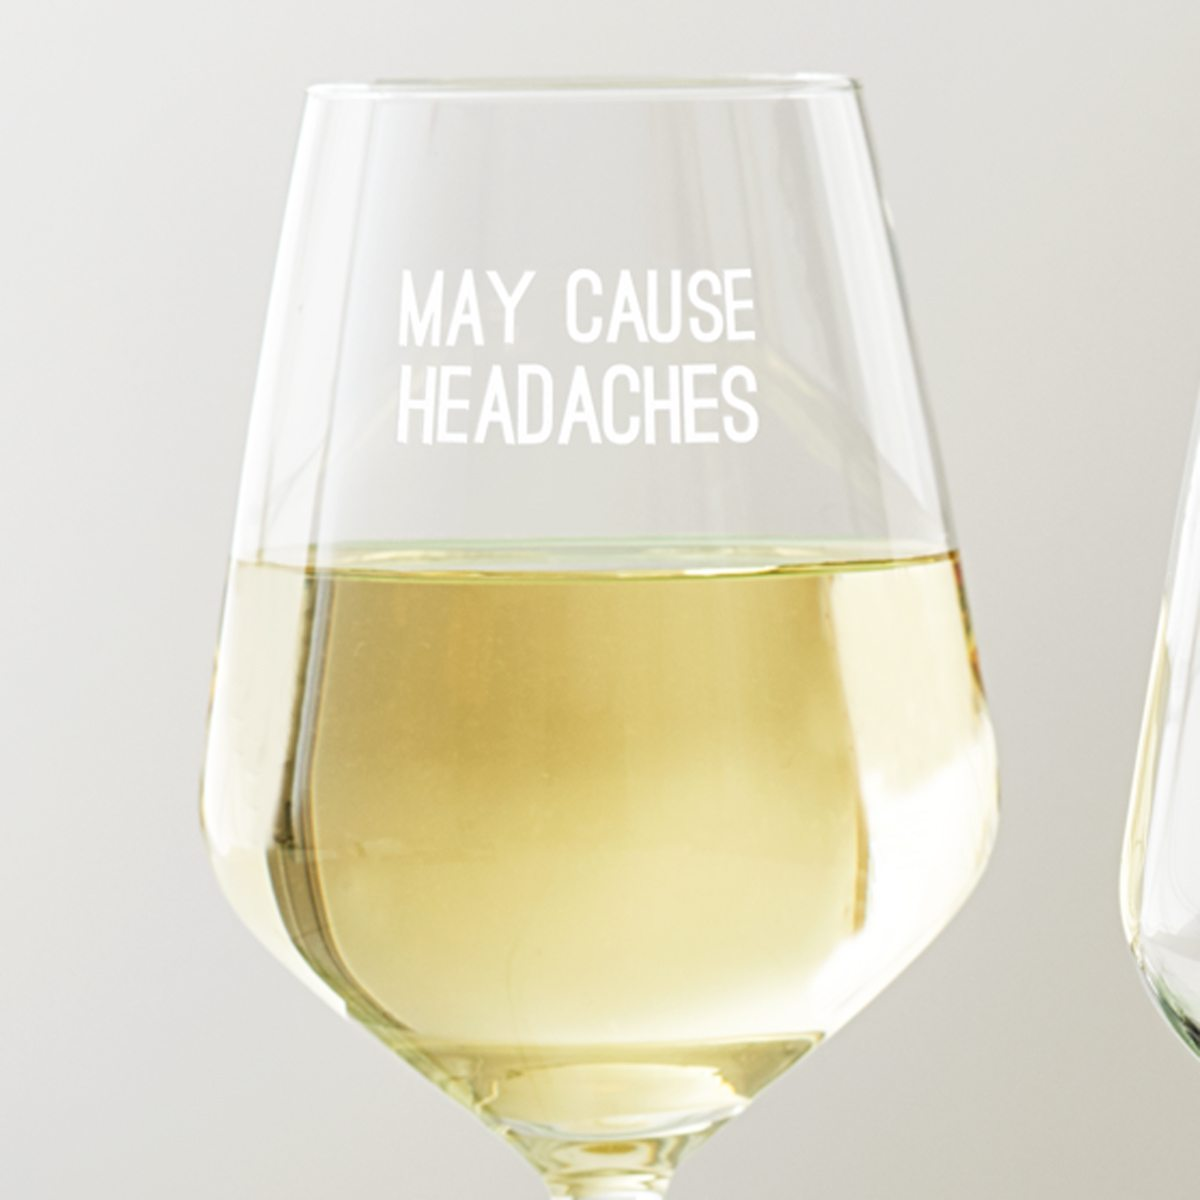 'May Cause Headaches' Wine Glass